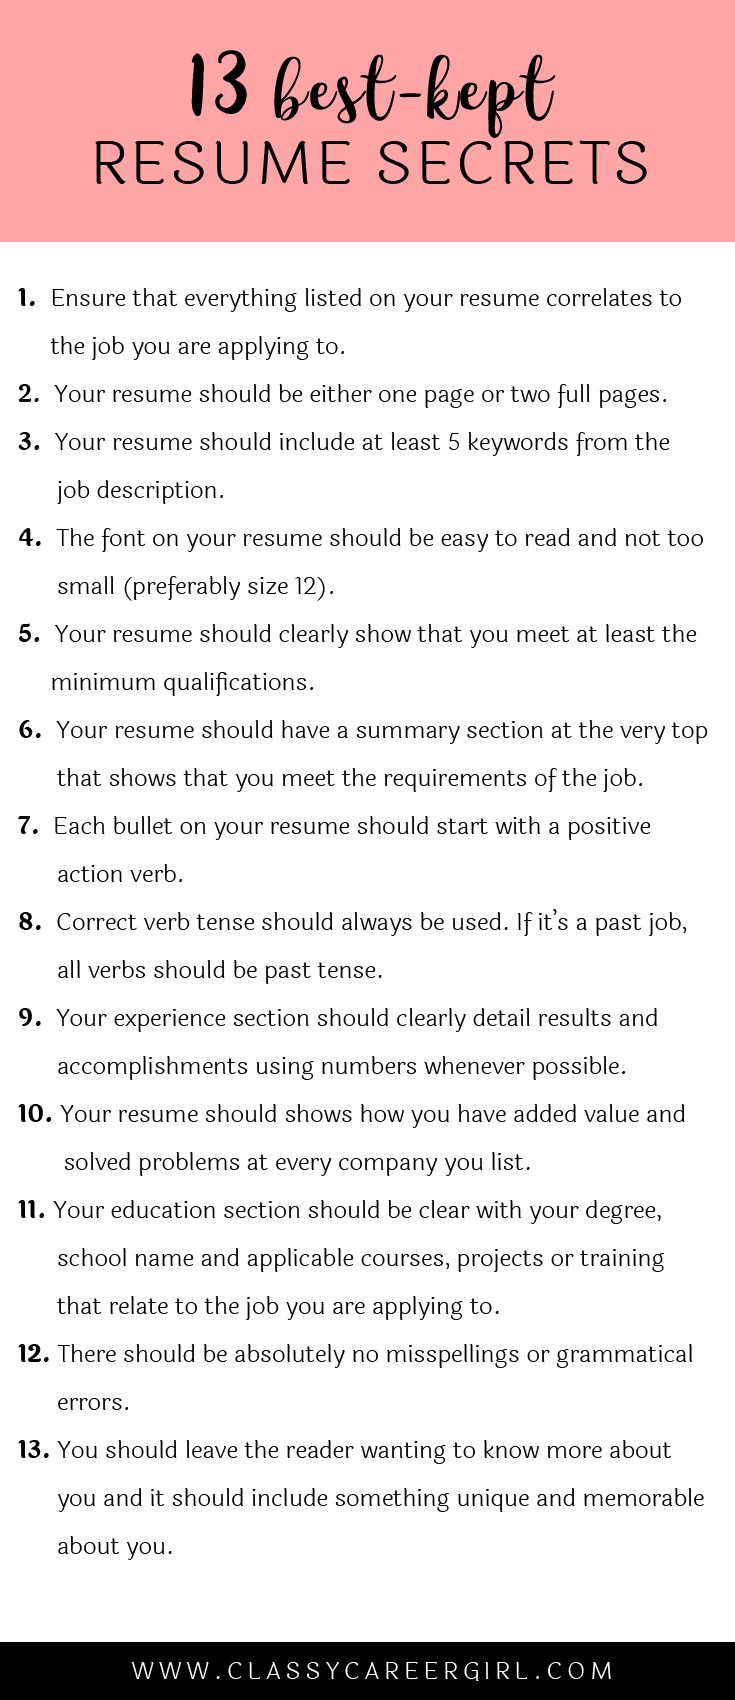 Opposenewapstandardsus  Inspiring  Ideas About Resume On Pinterest  Cv Format Resume Cv And  With Exciting Some Hiring Managers Will Toss Your Resume Out If You Dont Know These  With Amazing References On Resume Format Also Resume Interests Examples In Addition Job Resume Template Word And Resume Templ As Well As Make Resume Online Free Additionally Resume Template Mac From Pinterestcom With Opposenewapstandardsus  Exciting  Ideas About Resume On Pinterest  Cv Format Resume Cv And  With Amazing Some Hiring Managers Will Toss Your Resume Out If You Dont Know These  And Inspiring References On Resume Format Also Resume Interests Examples In Addition Job Resume Template Word From Pinterestcom